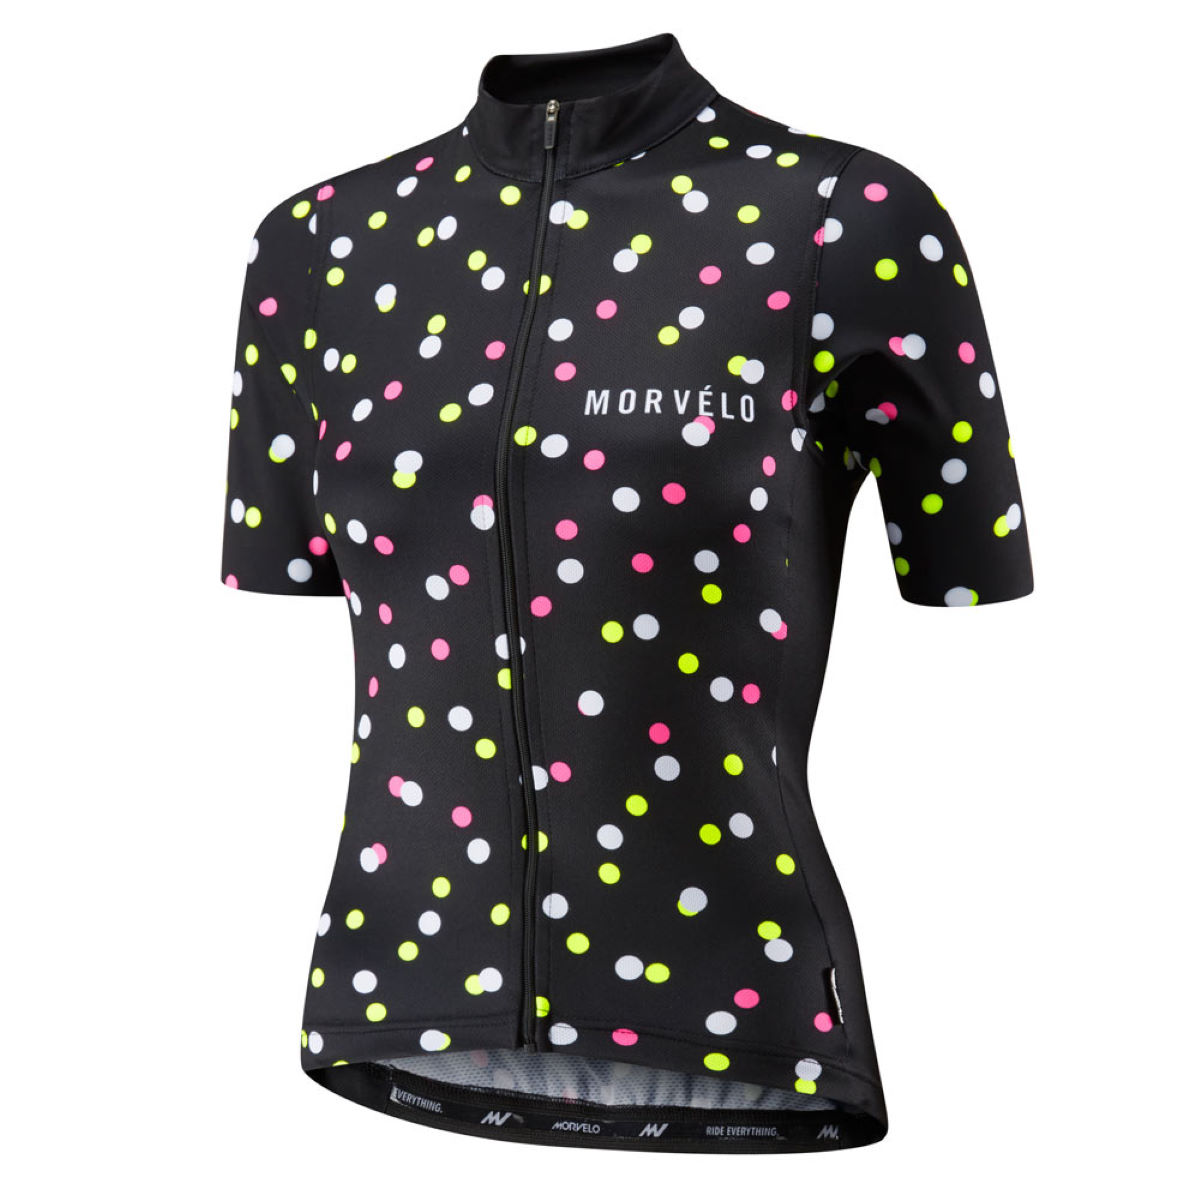 Maillot Femme Morvelo Gumball (manches courtes) - M Gumball